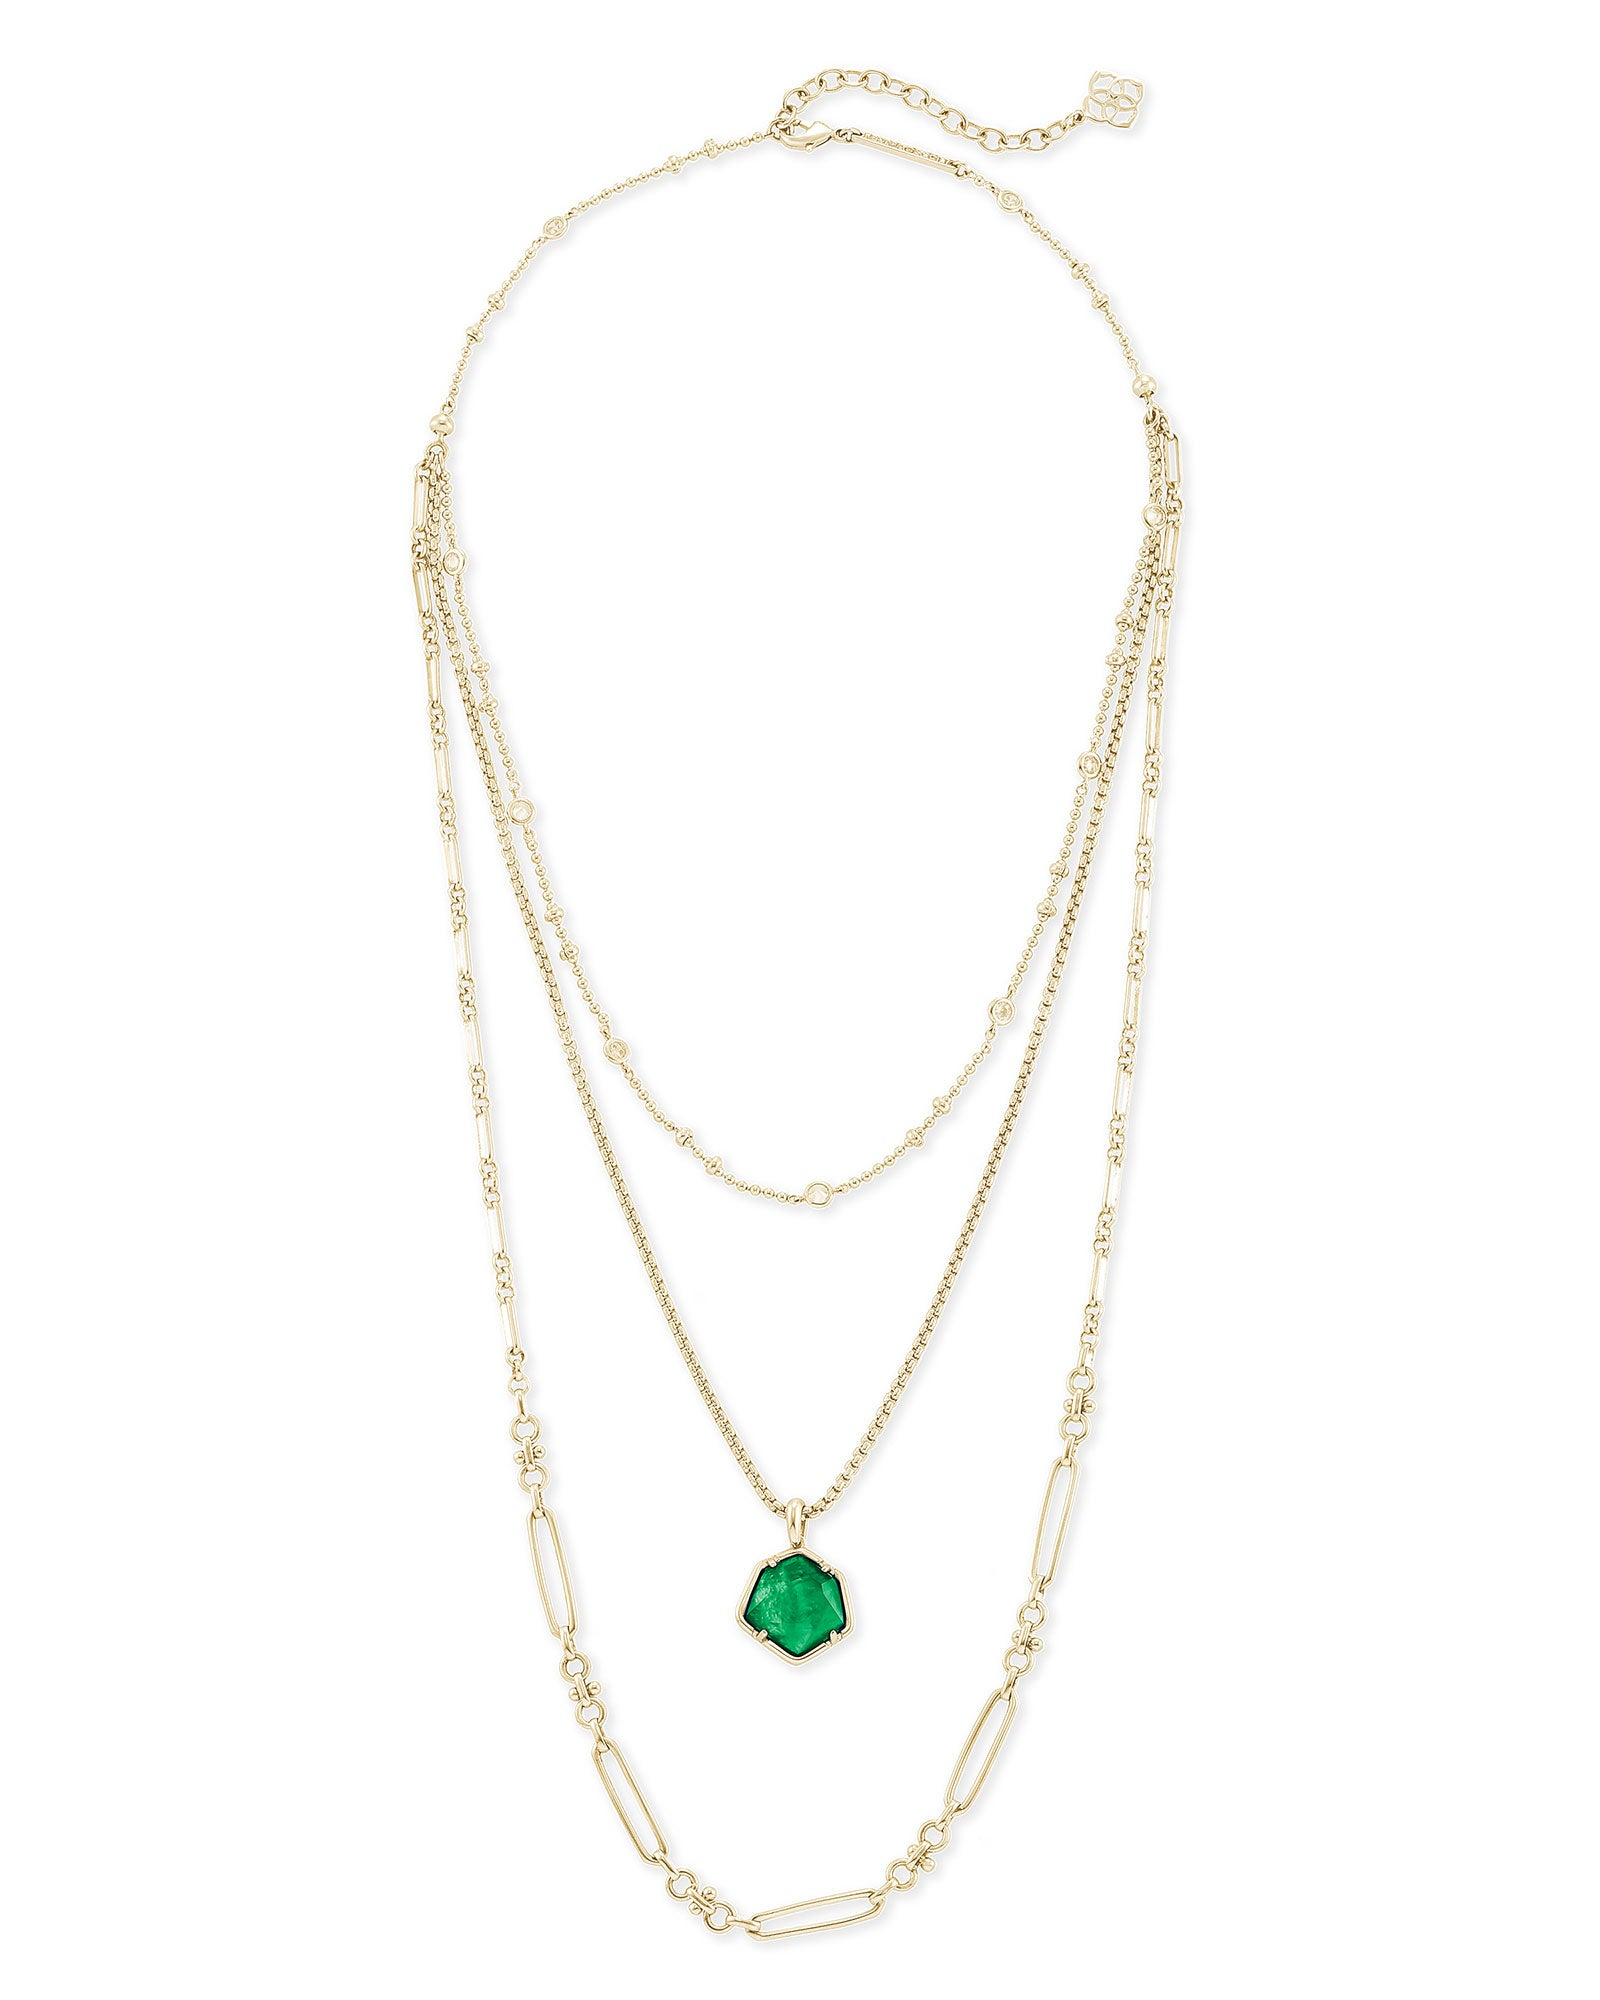 Vanessa Gold Multi Strand Necklace in Jade Green Illusion